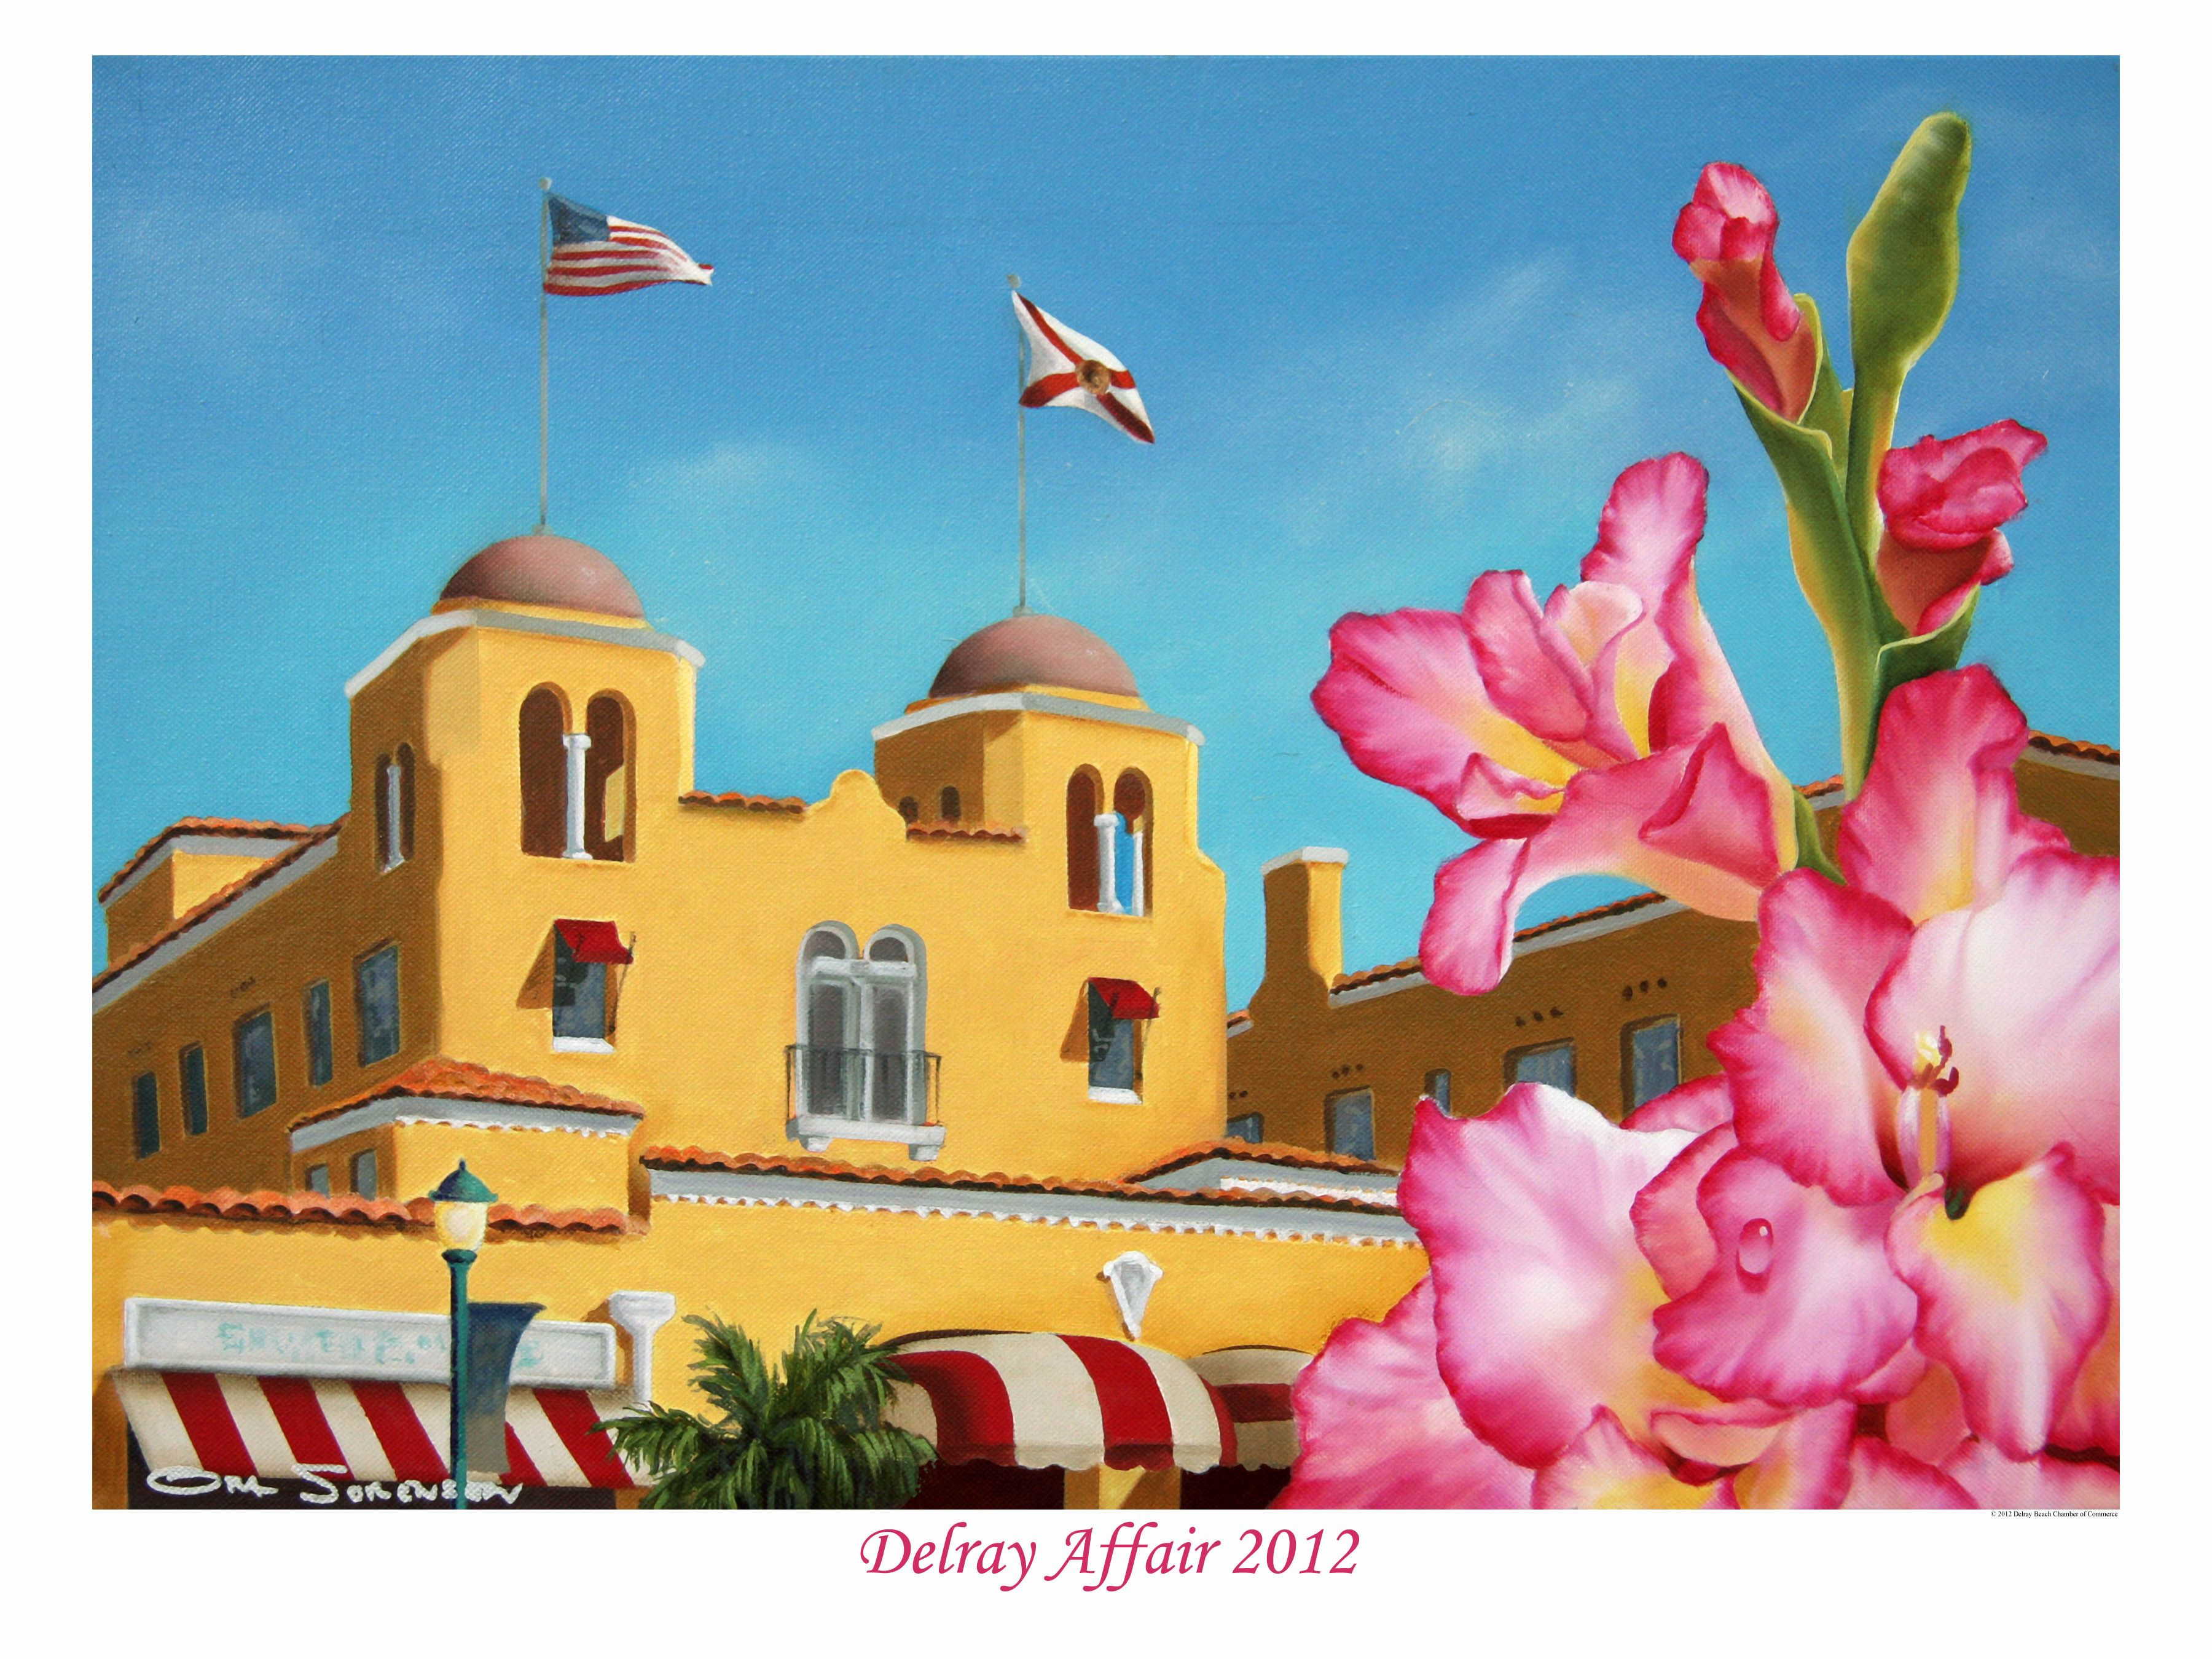 2012 delray affair poster past posters all events - Palm beach gardens tennis center ...